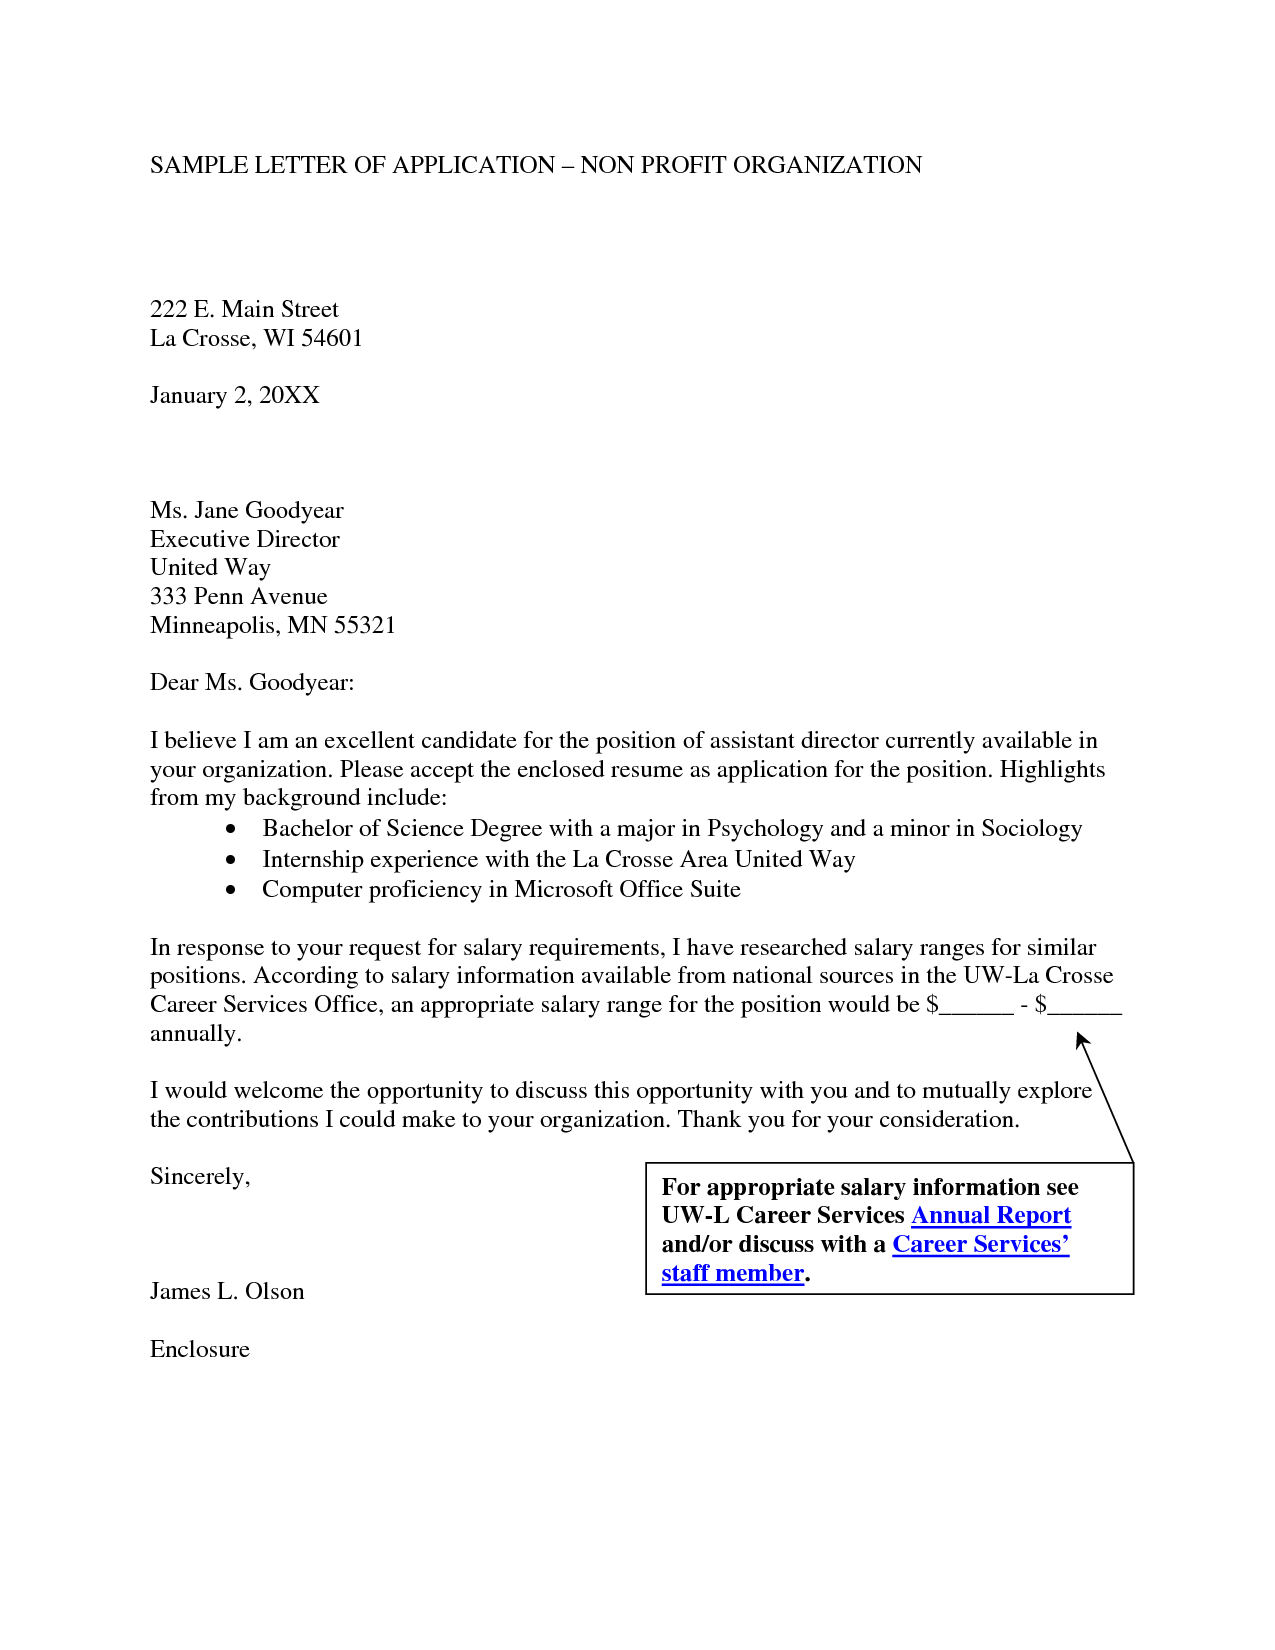 Delightful Cover Letter For Non Profit Board Resignation Sample Member And Non Profit Cover Letter Sample